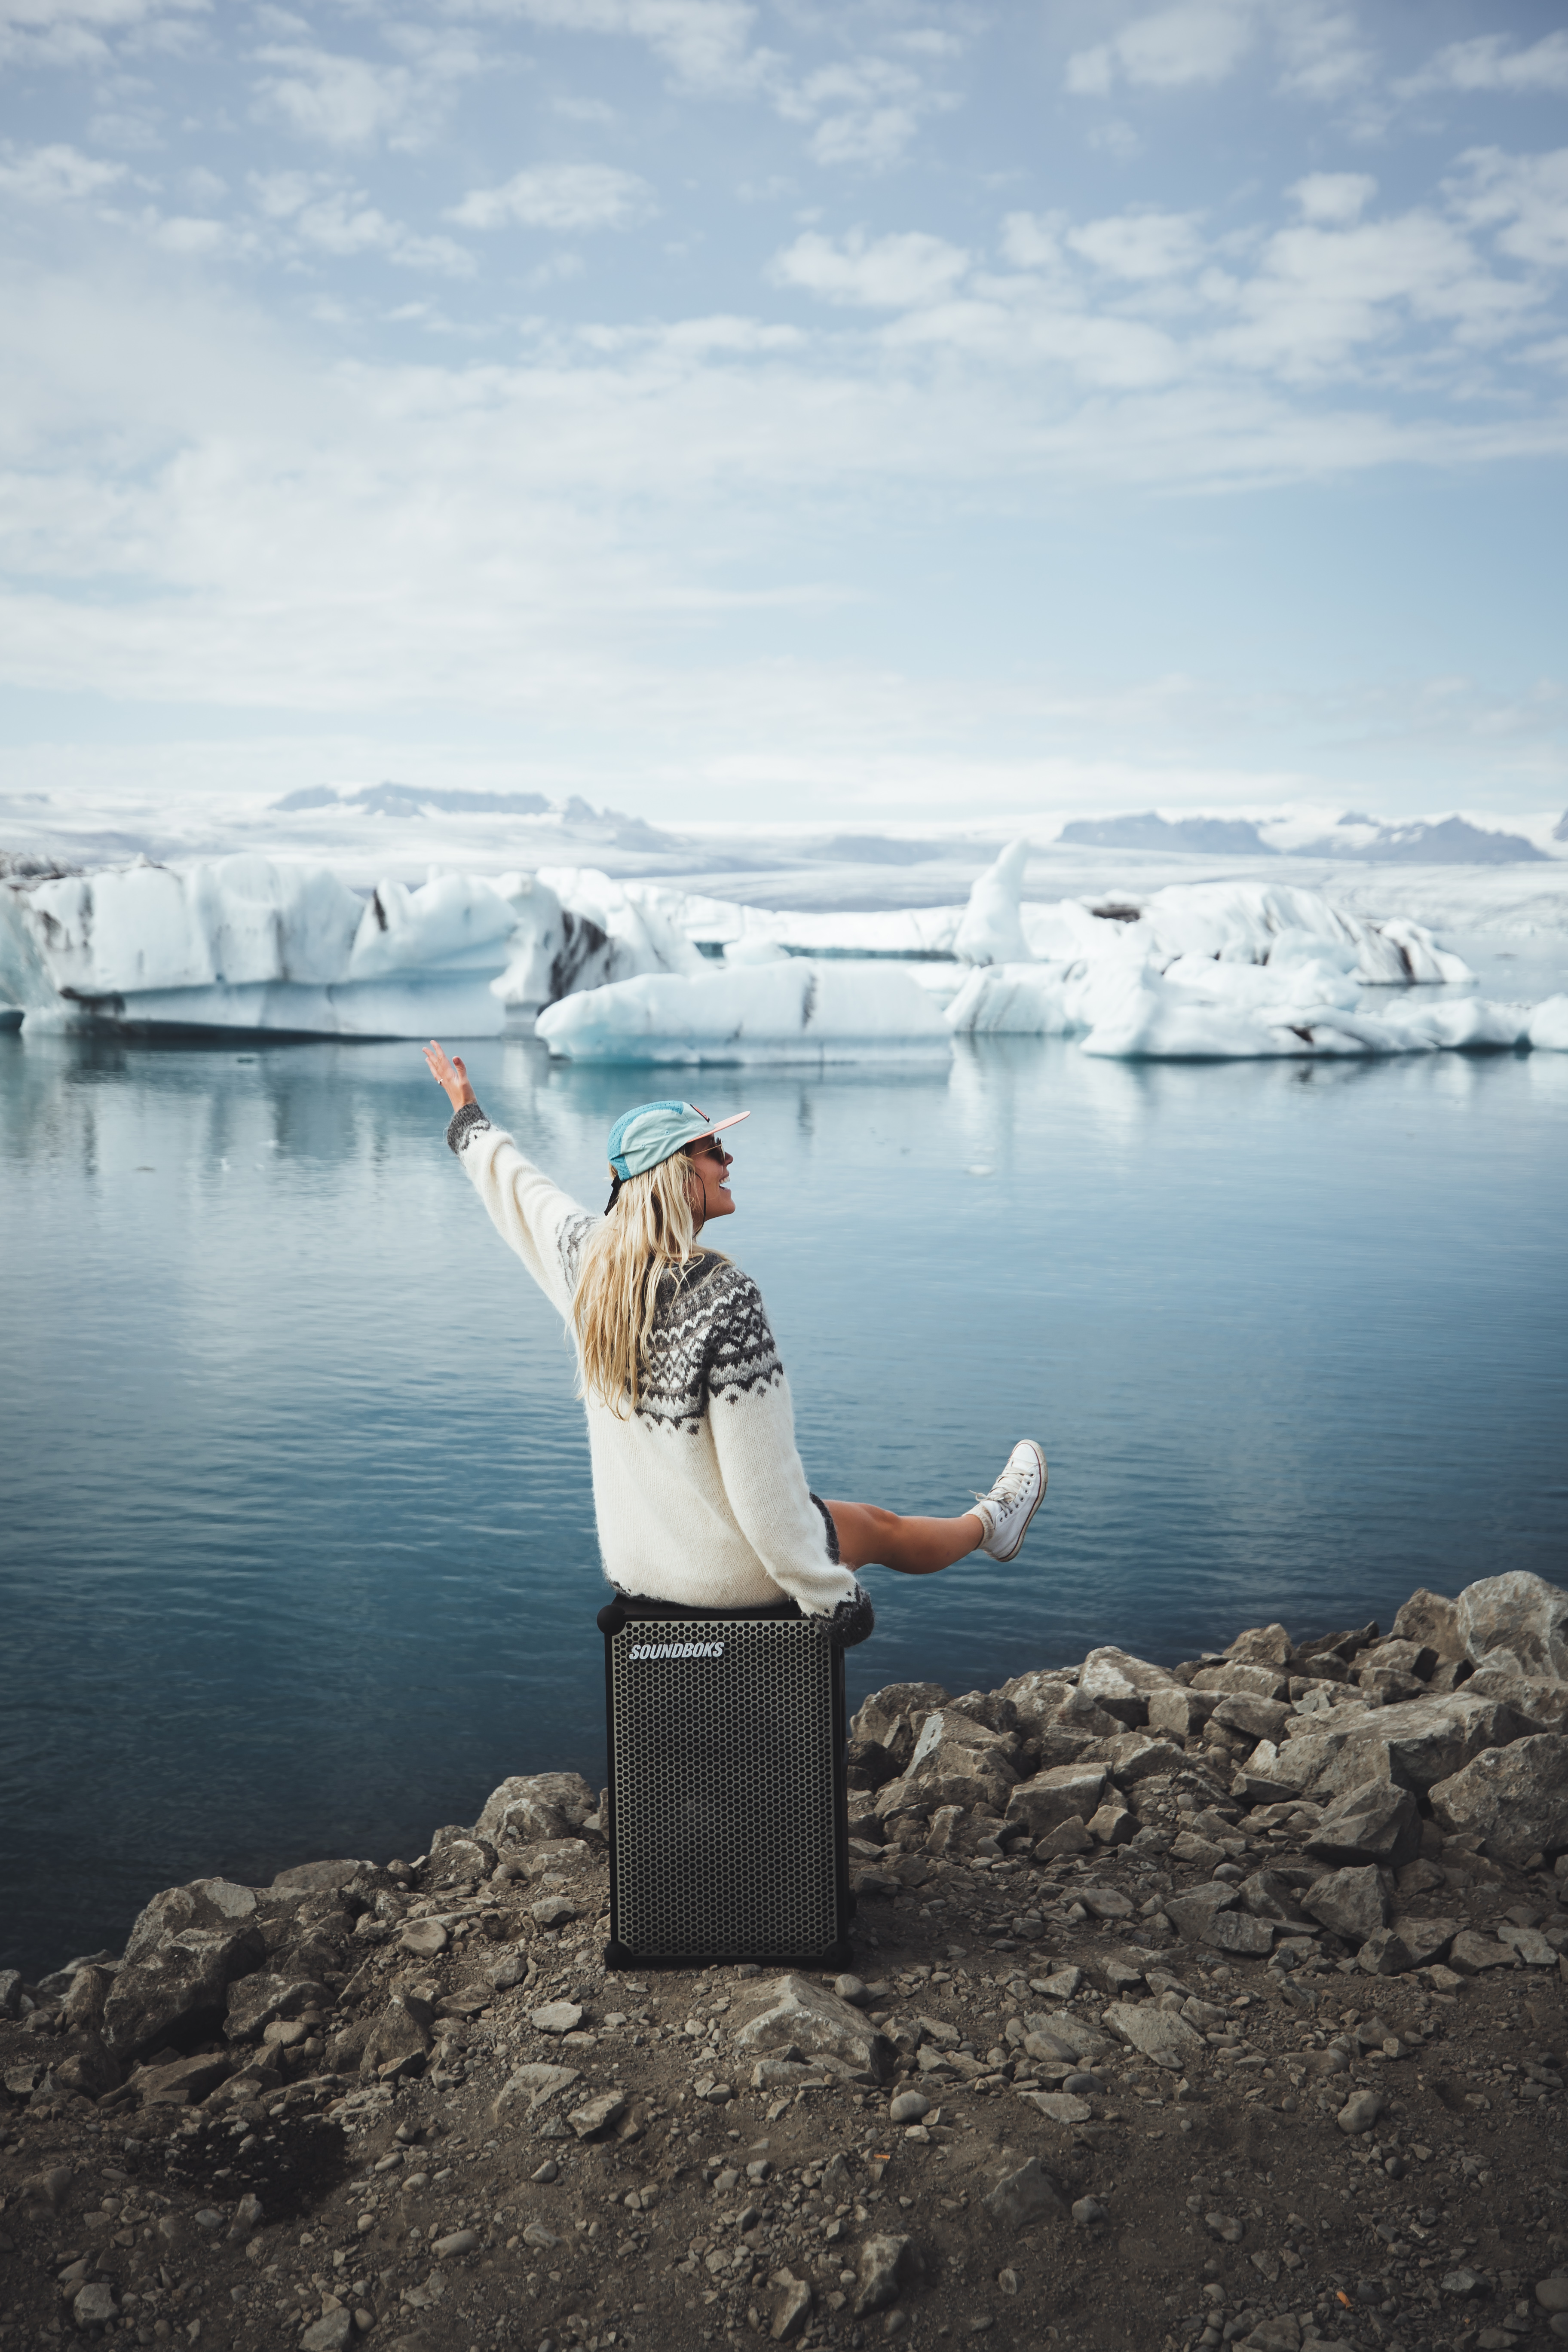 Asa sitting on a SOUNDBOKS in front of an iceburg